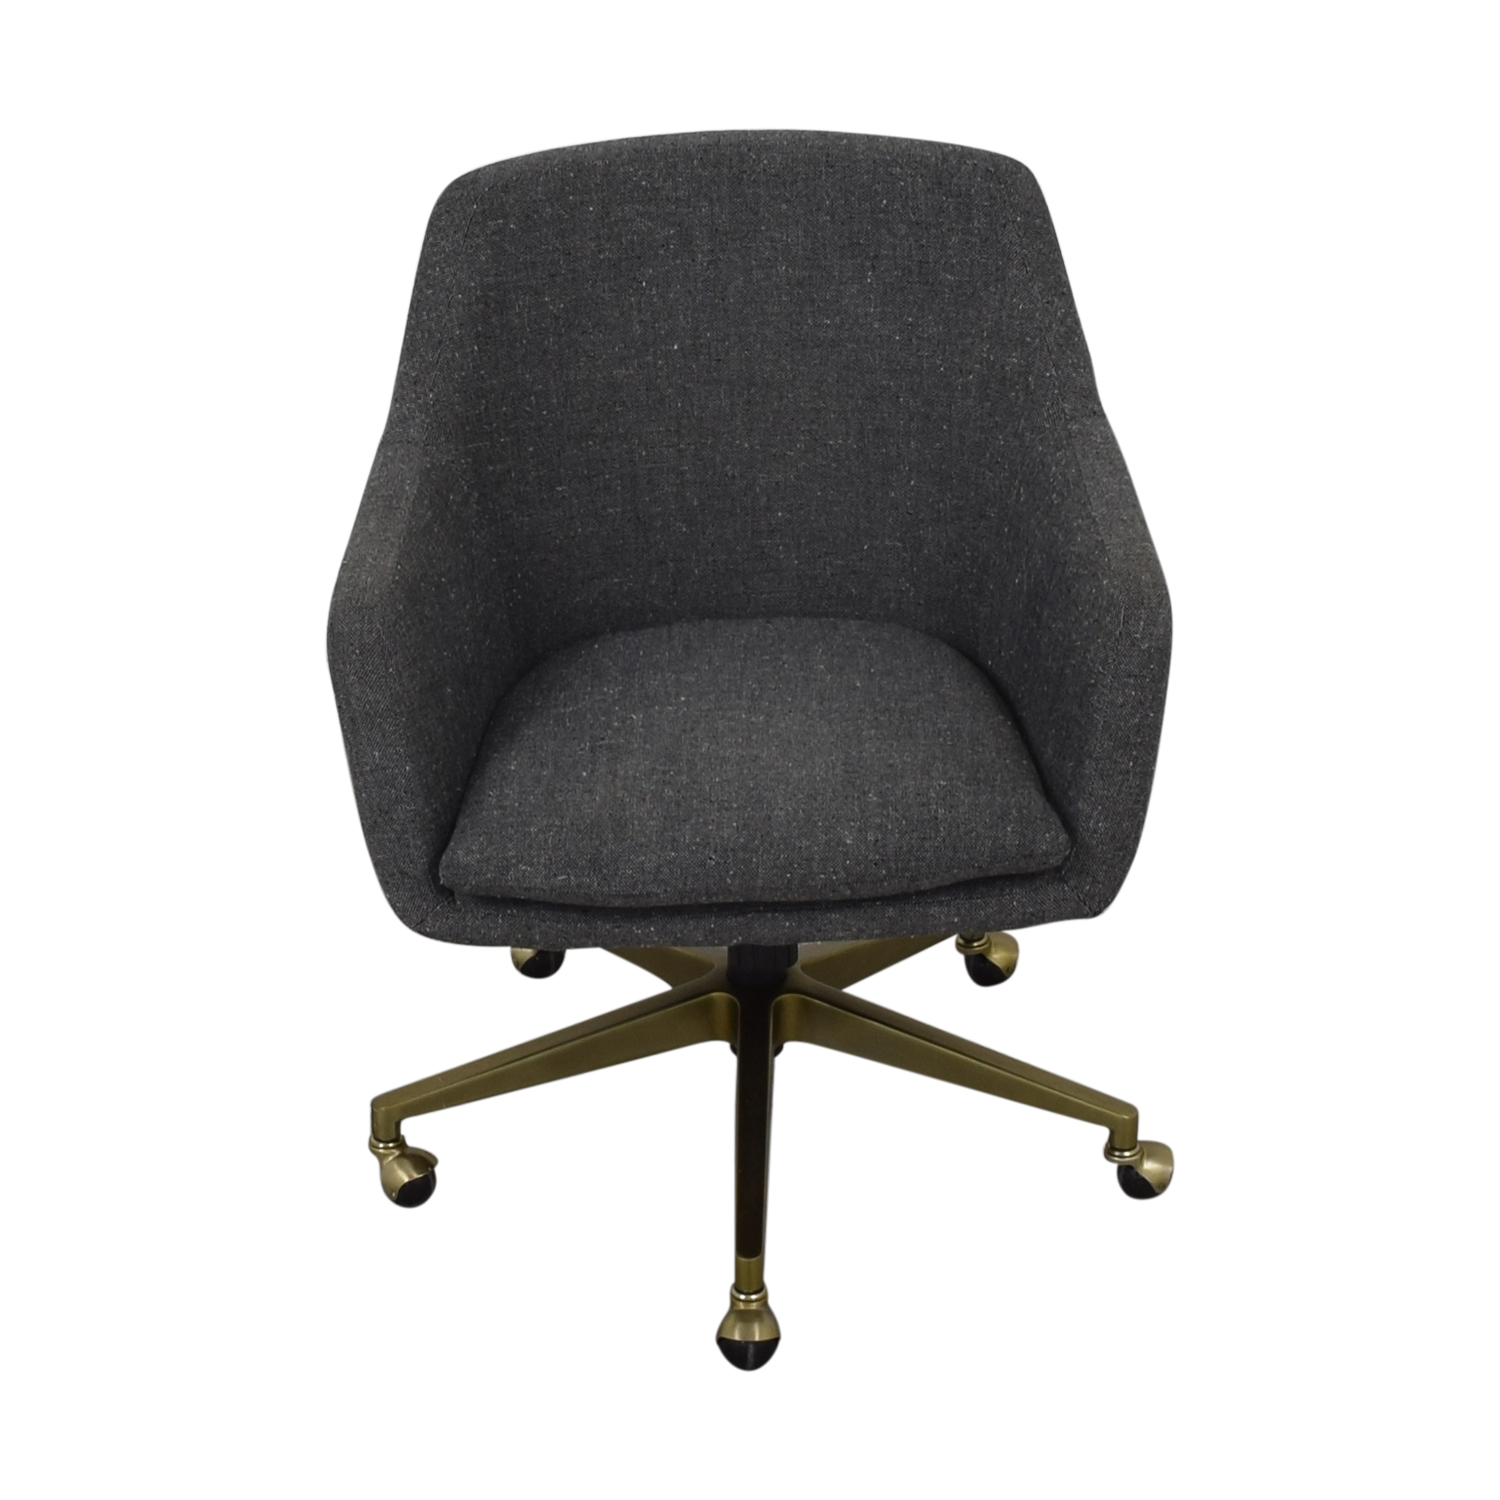 West Elm West Elm Helvetica Fabric Desk Chair